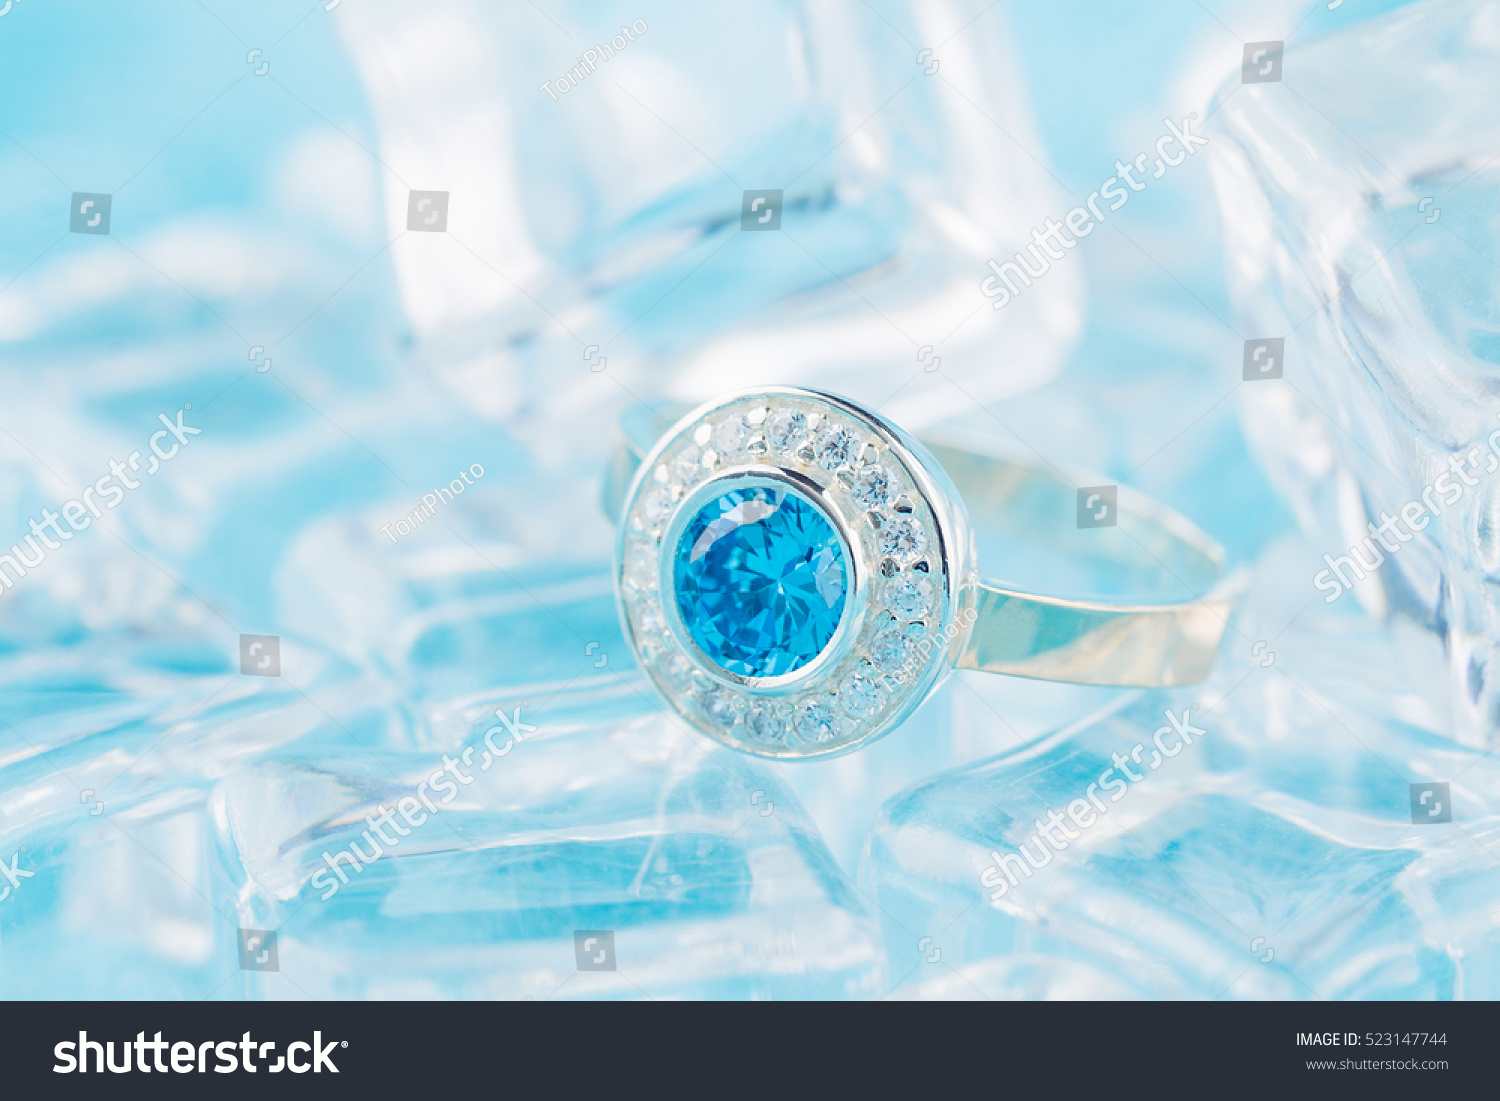 https://www.shutterstock.com/pic-523147744/stock-photo-close-up-silver-ring-with-zircon-and-expensive-blue-gemstone-still-life-on-ice-blue-background.html